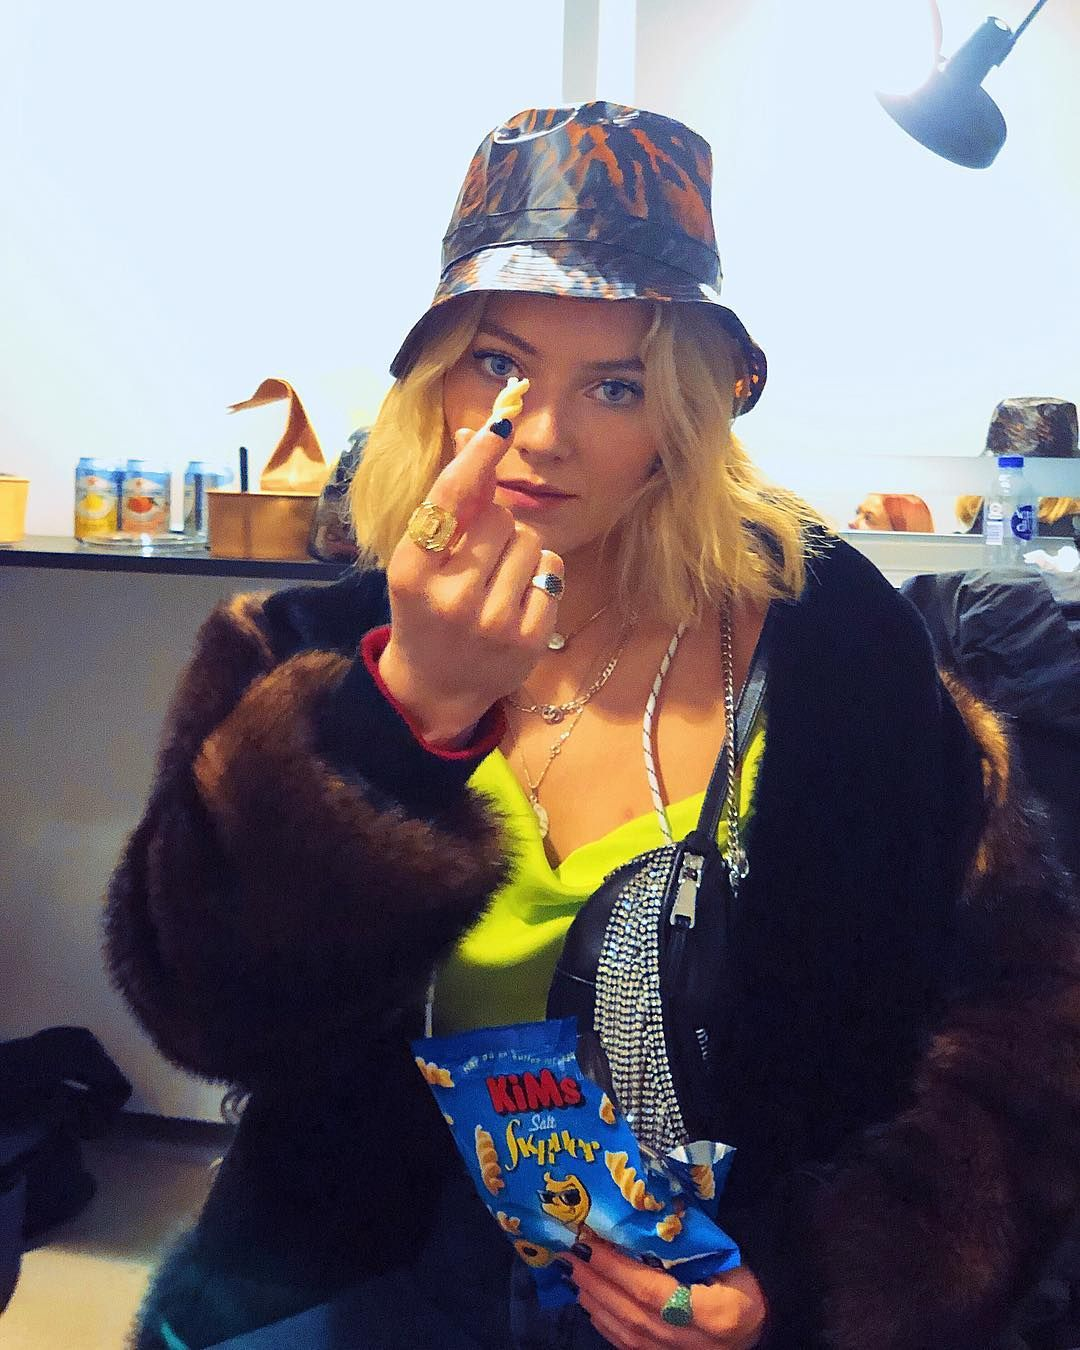 Astrid S On Instagram Are You Even Qualified For A Danish Afterparty Without A Rain Hat Faux Fur And Saltskruer Salty Screws Astrid S Zara Larsson Rain Hat